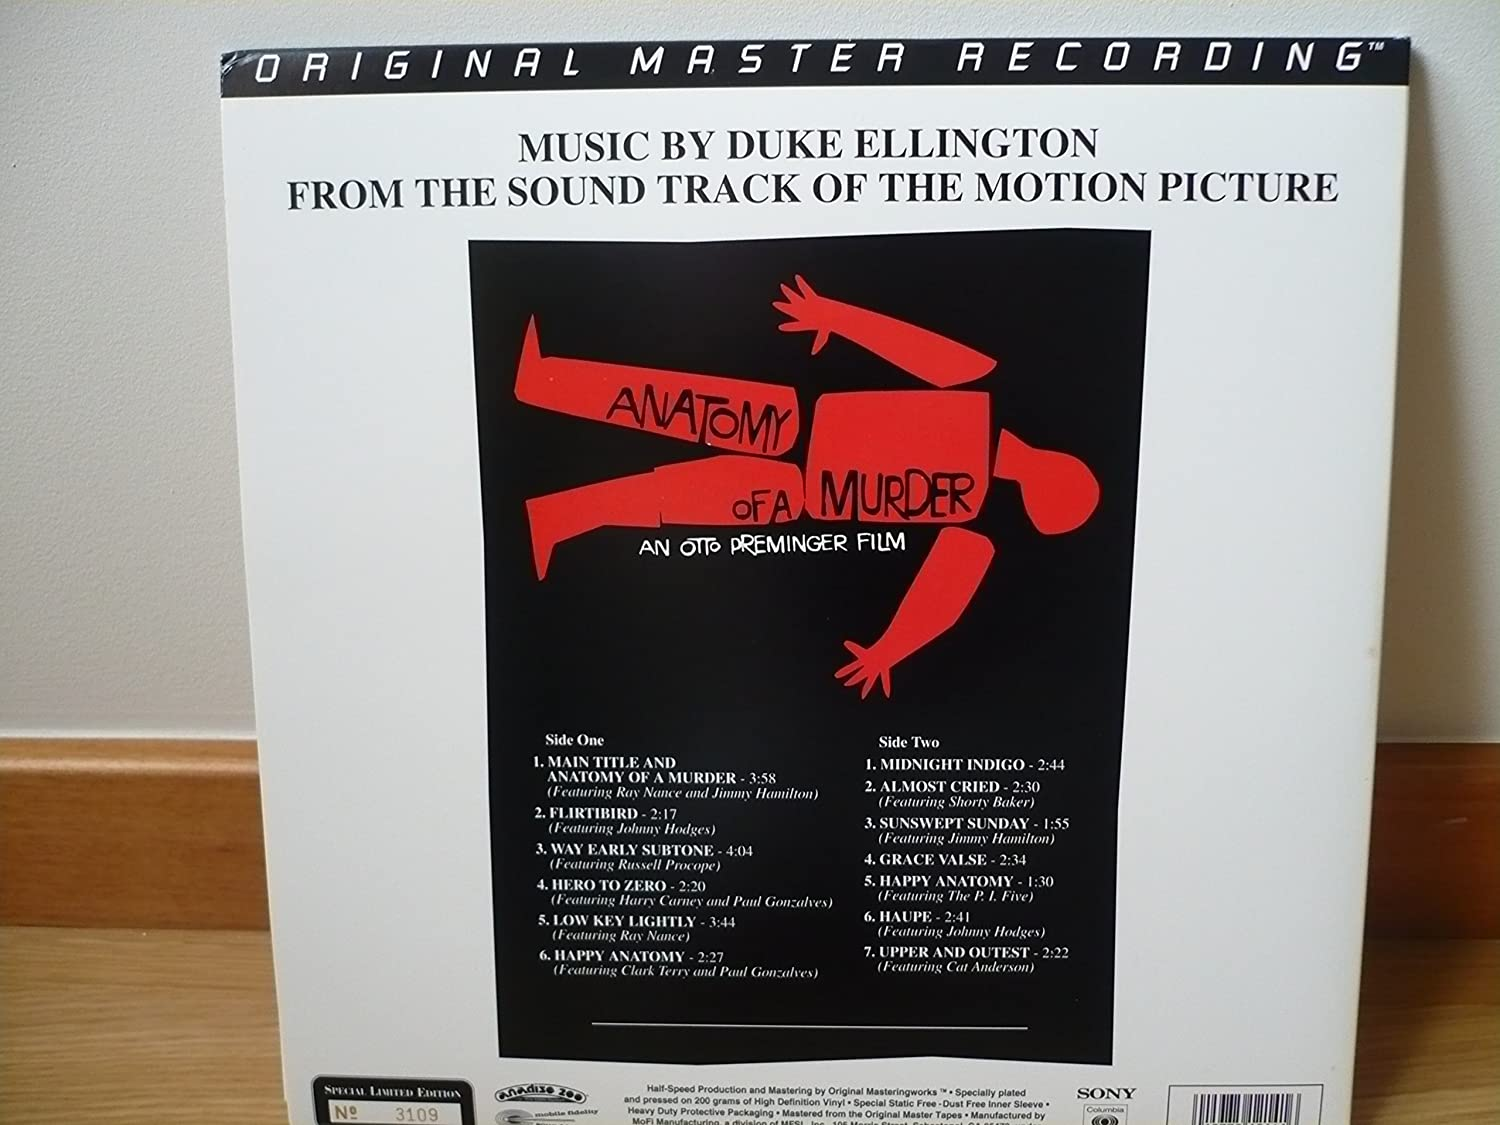 Duke Ellington - Anatomy of a Murder [Vinyl] - Amazon.com Music